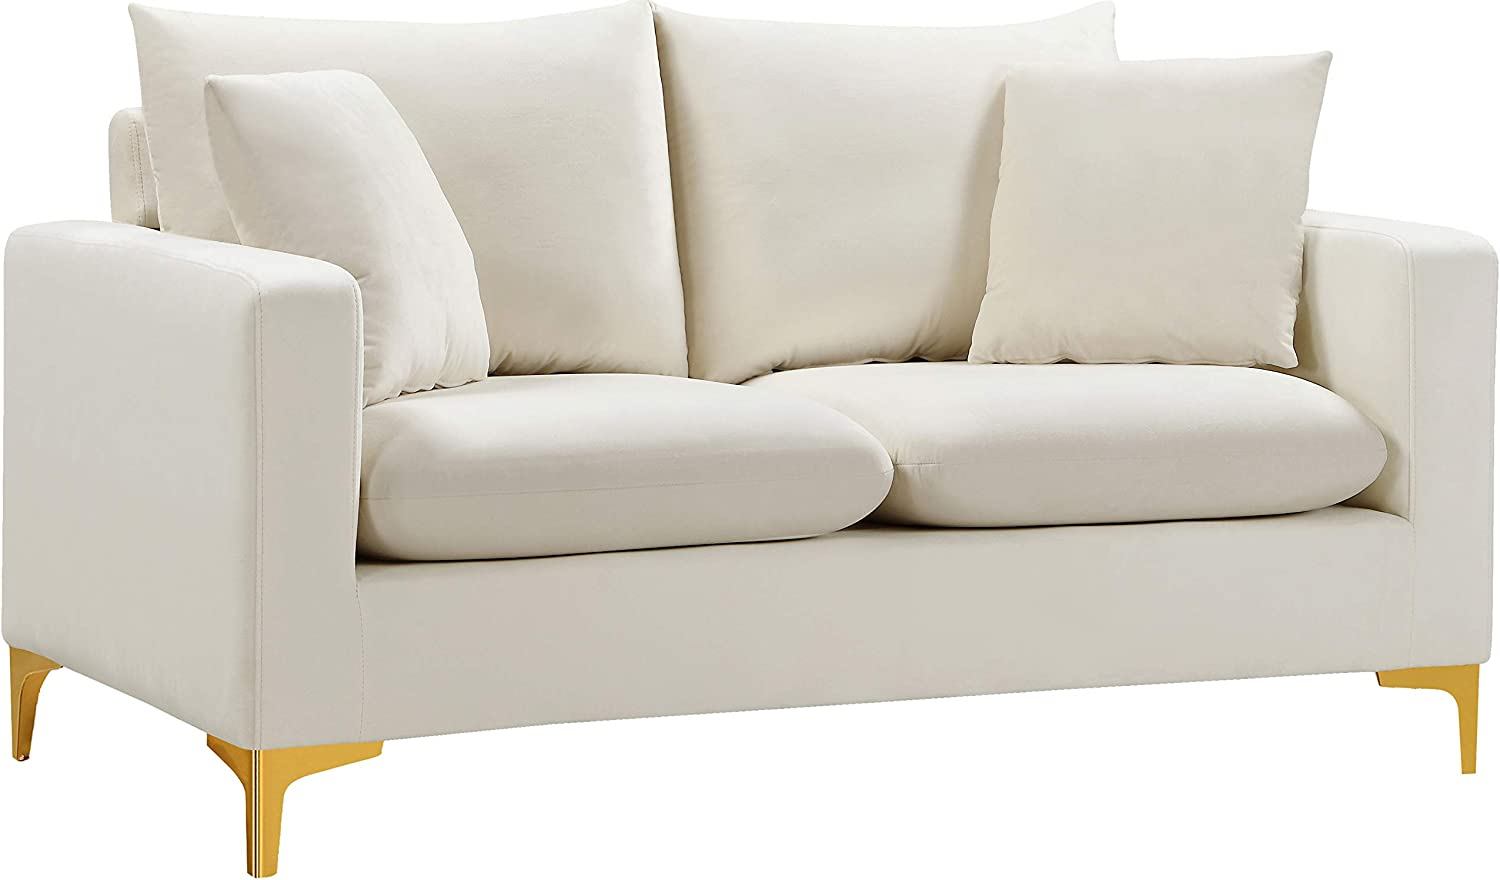 Meridian Furniture Naomi Collection Modern   Contemporary Velvet Upholstered Loveseat with Stainless Steel Base in a Rich Gold or Chrome Finish, 58